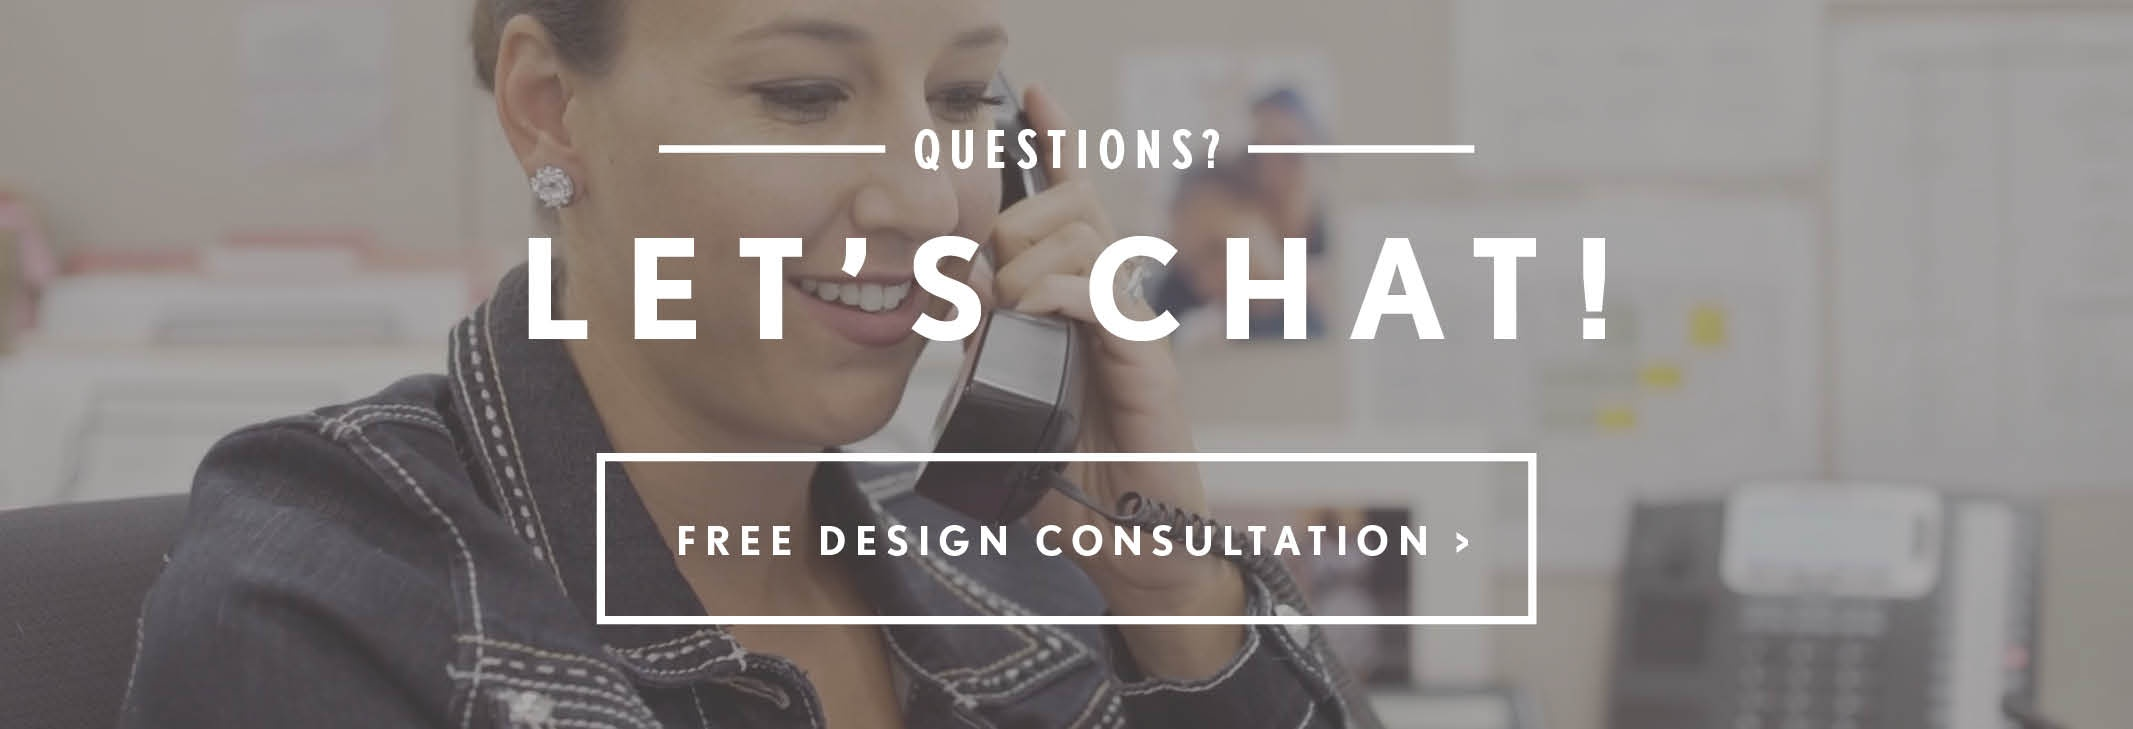 Questions? Let's chat! Free Design Consultation >